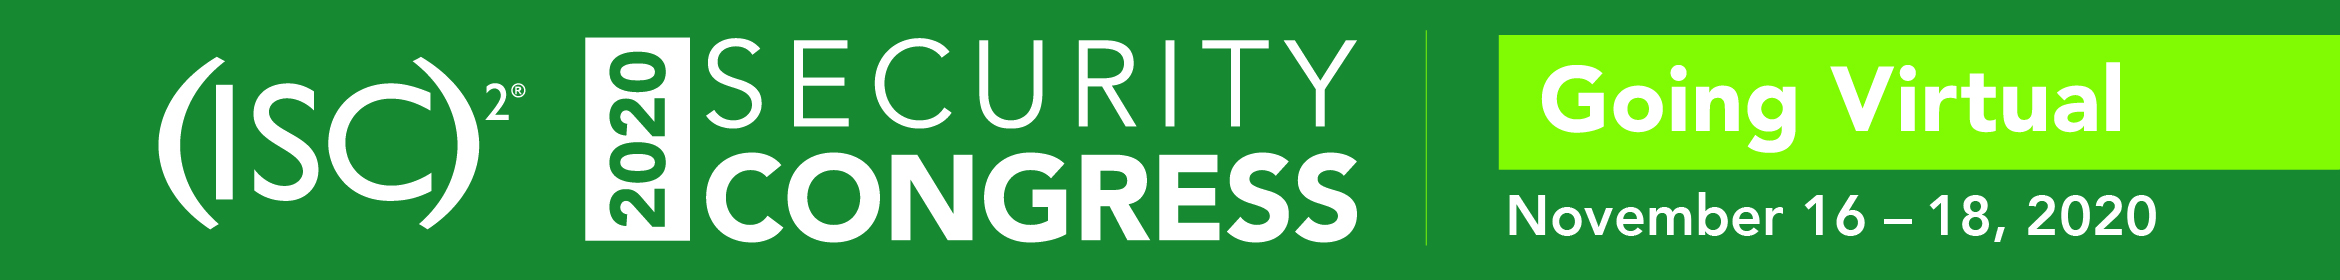 2020 (ISC)2 Virtual Security Congress Main banner